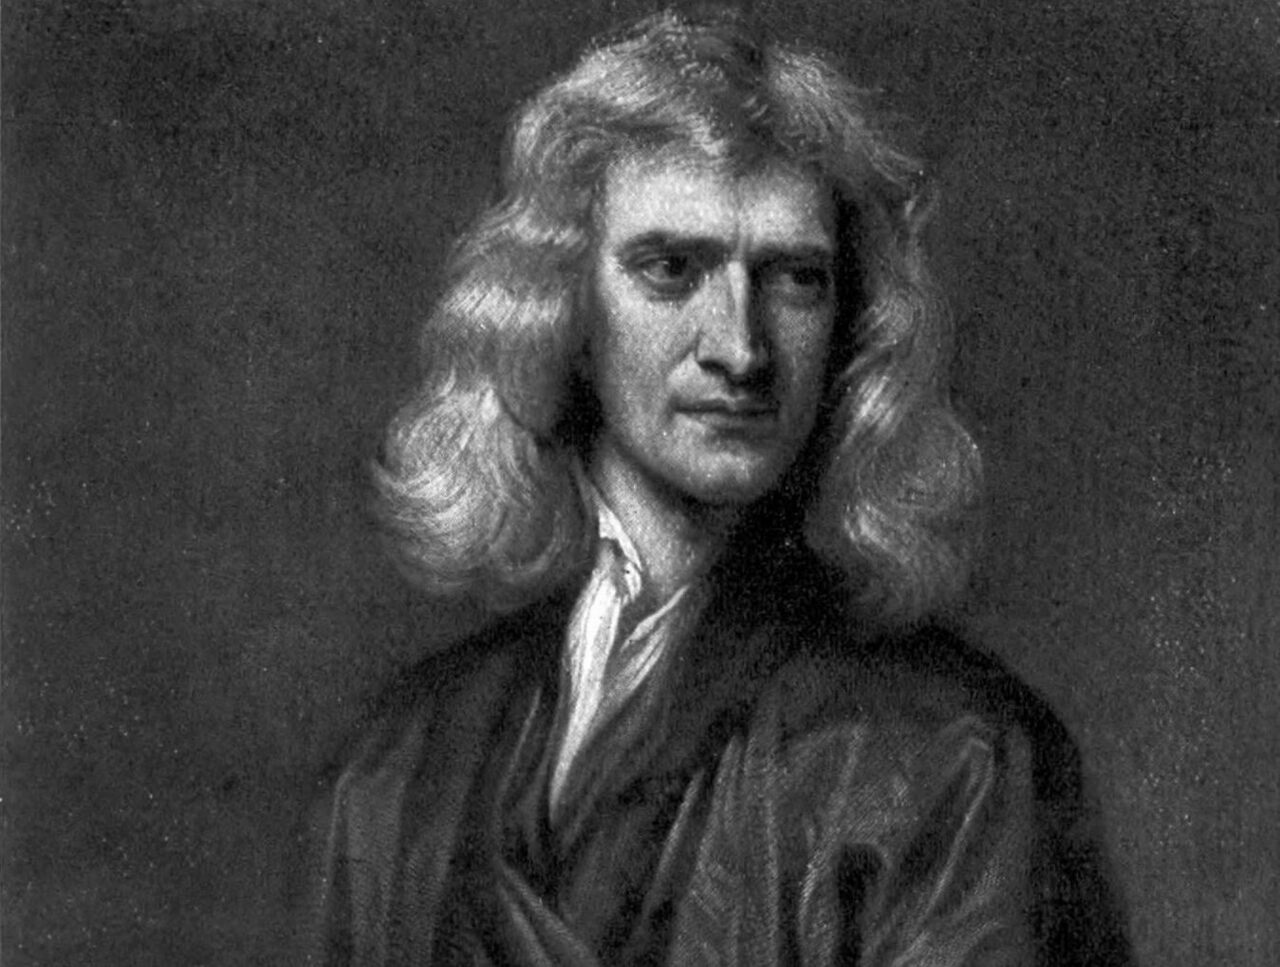 Ever the dutiful student, Isaac Newton took notes while he learned about the plague as a twentysomething.